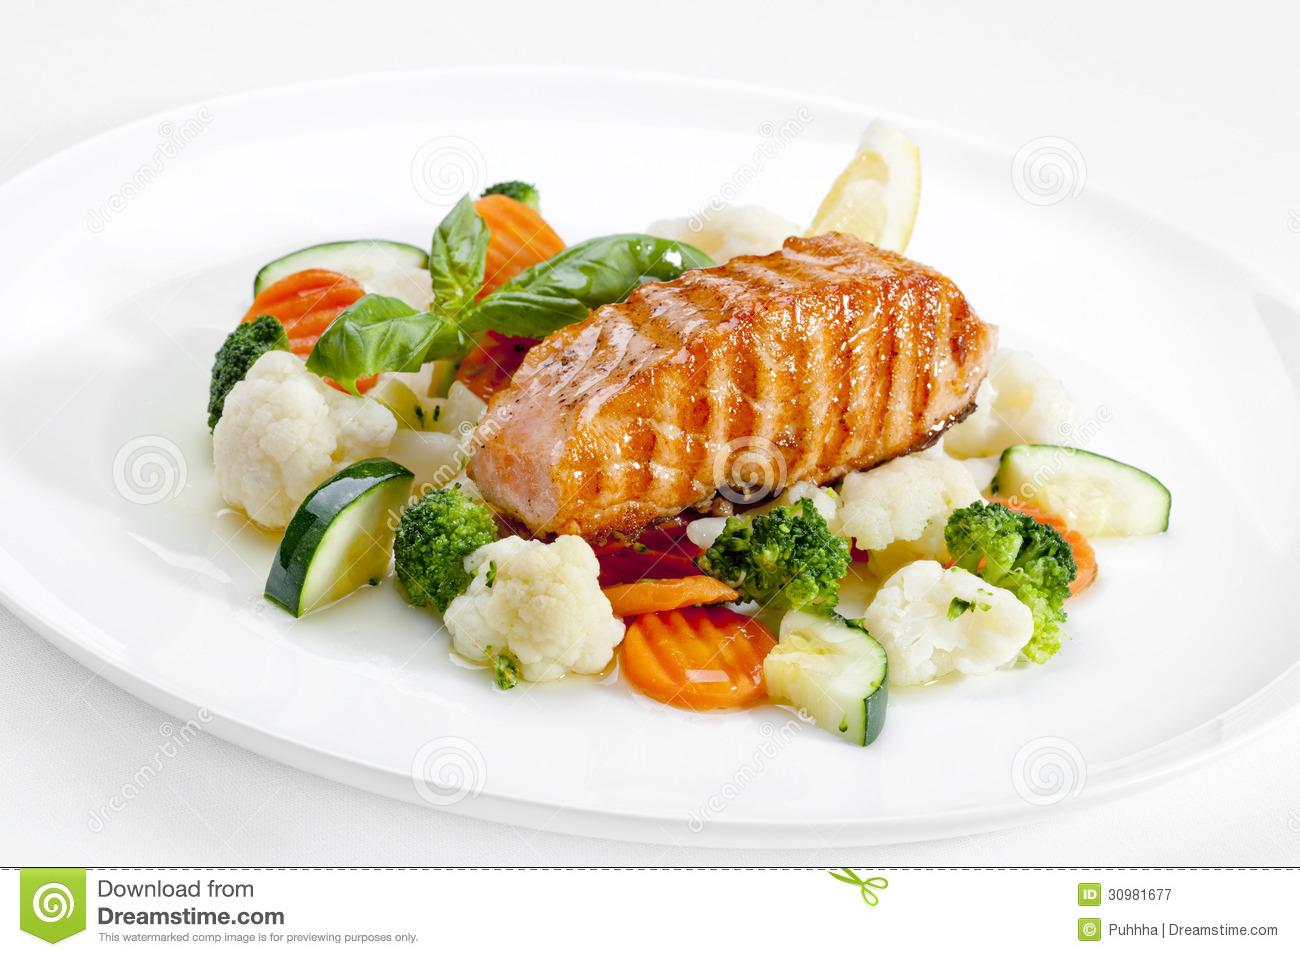 A Tasty Food Grilled Fish And Vegetables High Quality Image Stock